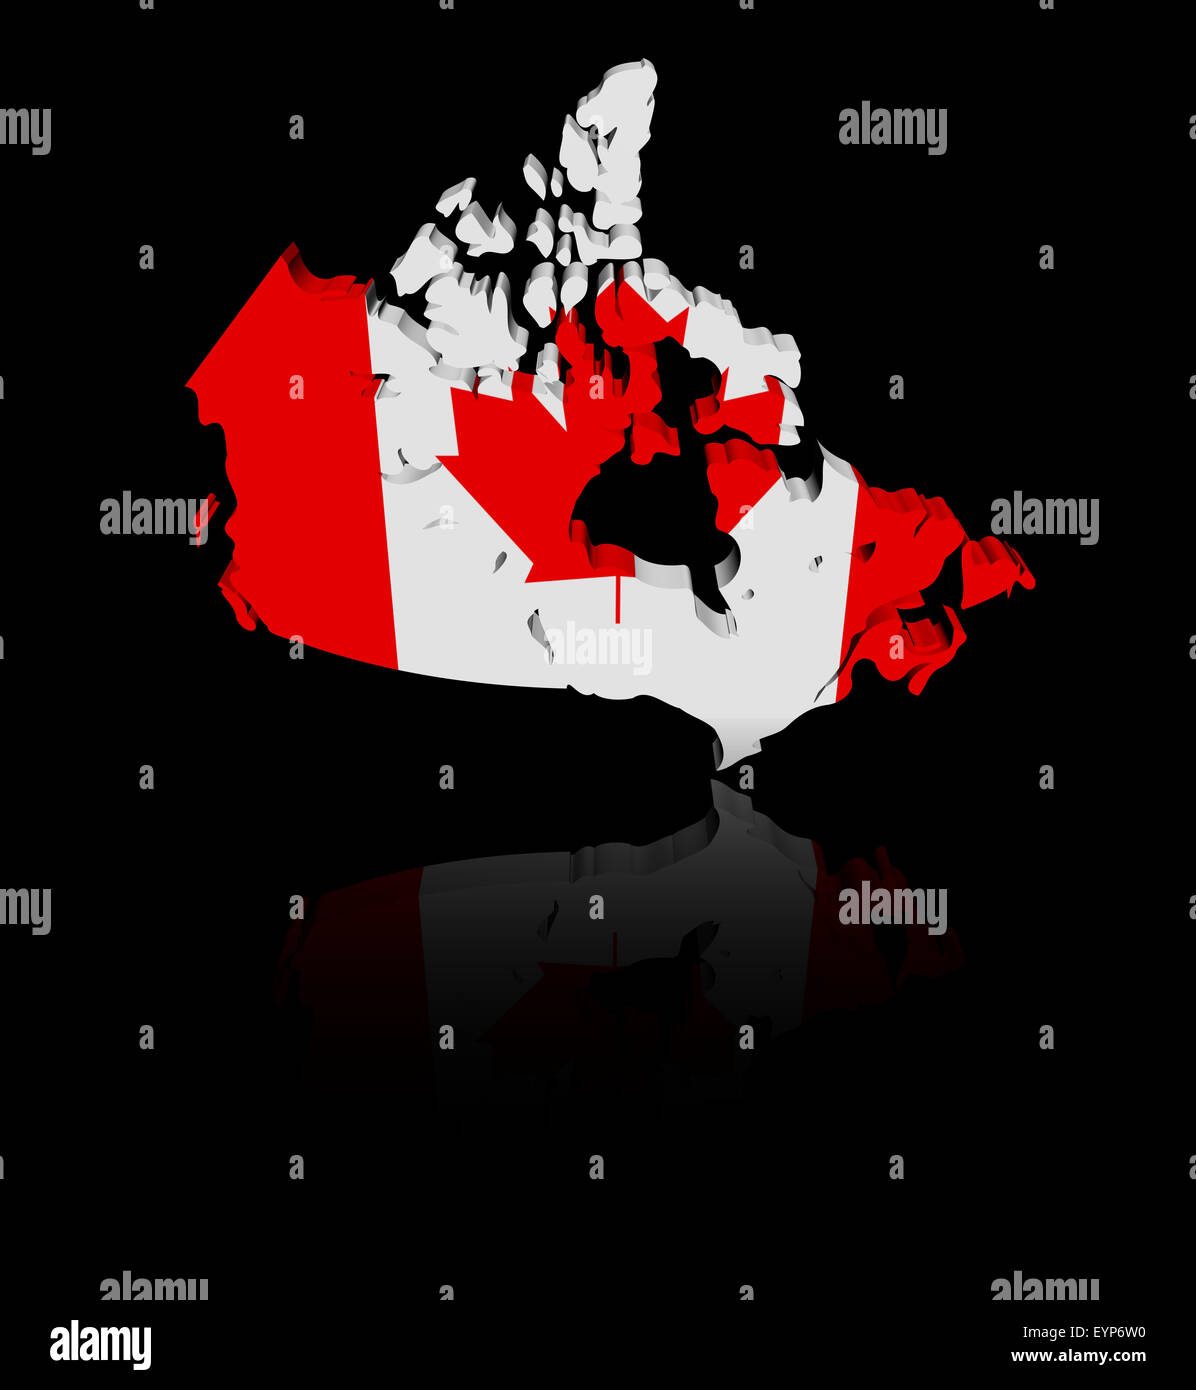 Canada Map Flag.Canada Map Flag With Reflection Illustration Stock Photo 85925532